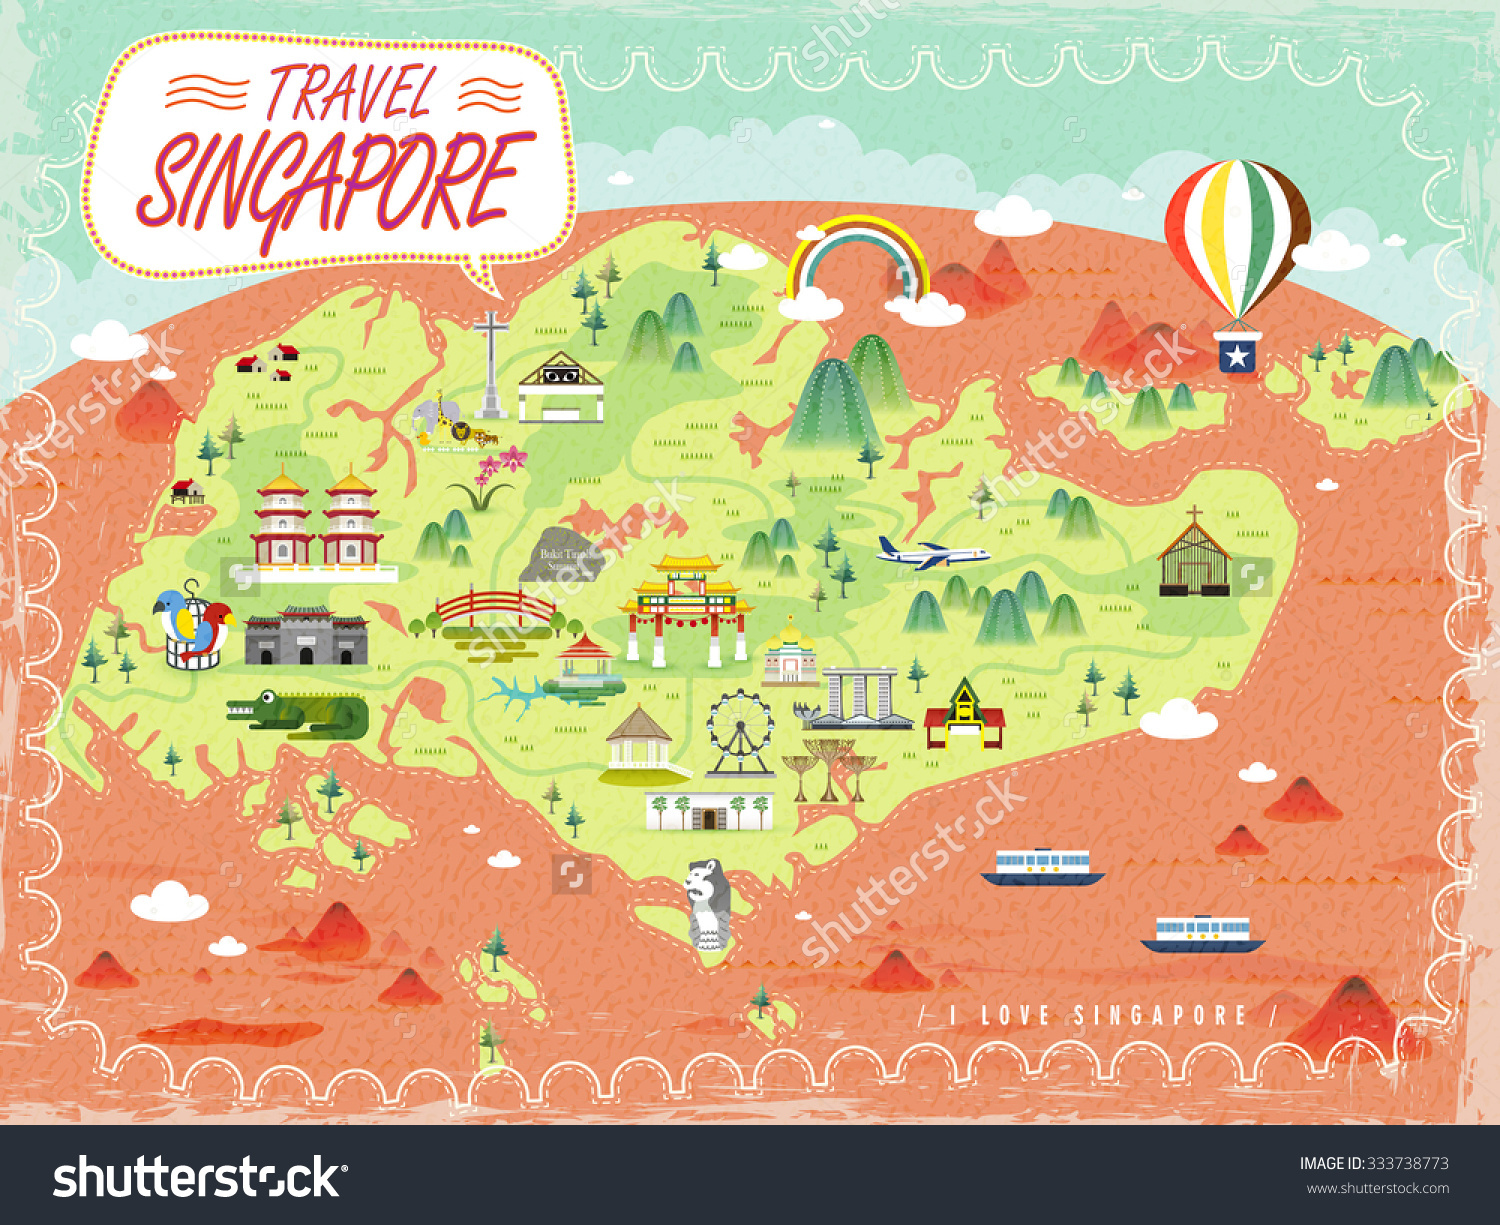 Singapore Travel Map Lovely Attractions Flat Illustration – Singapore Tourist Map